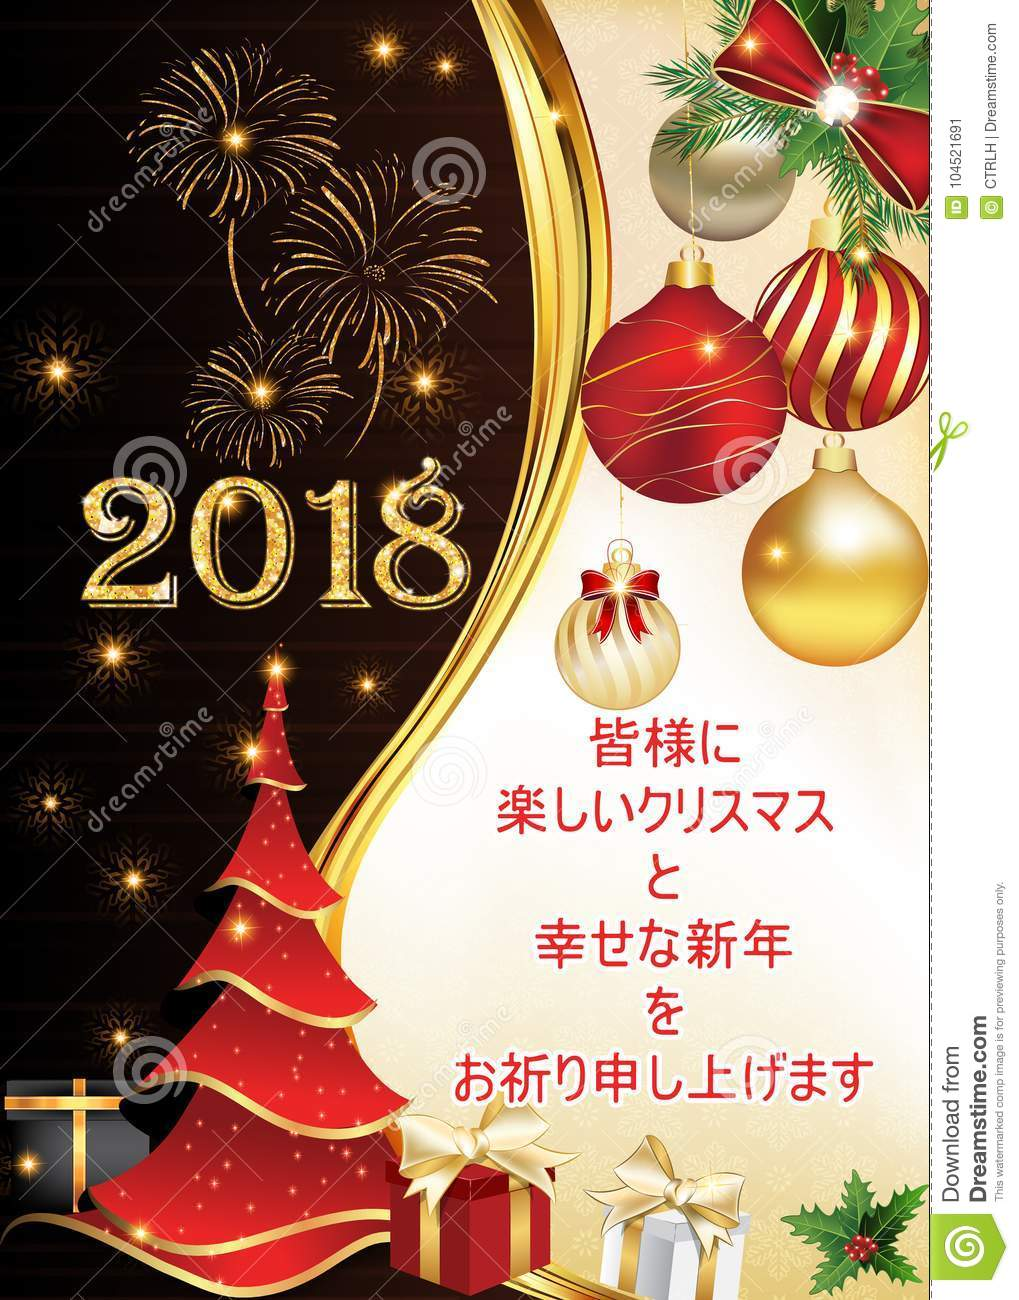 Greeting Card For Christmas And New Year With Text In Japanese